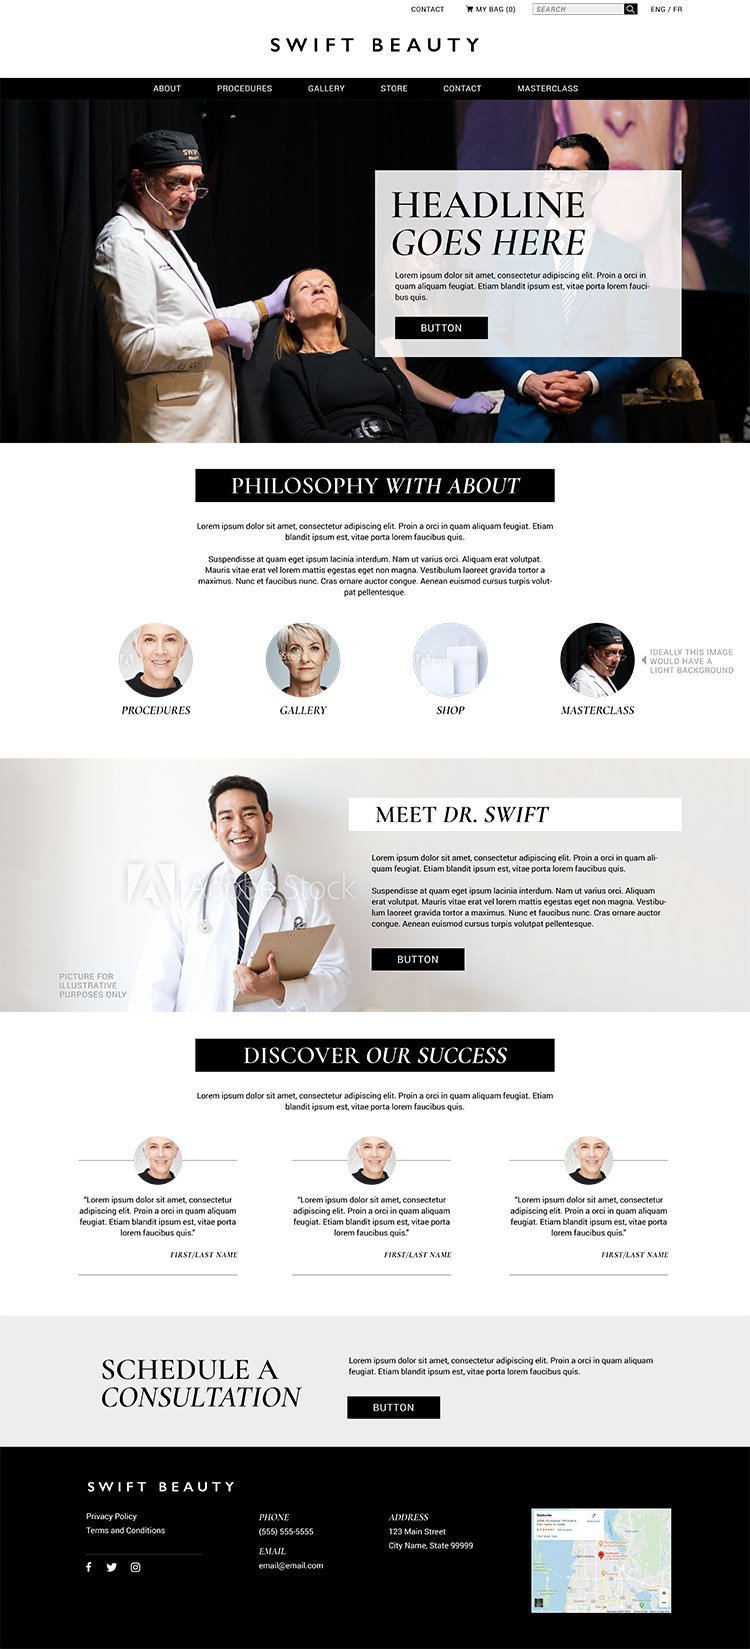 Swift Beauty website Firebrand Design & Business Solutions in Safety Harbor, FL